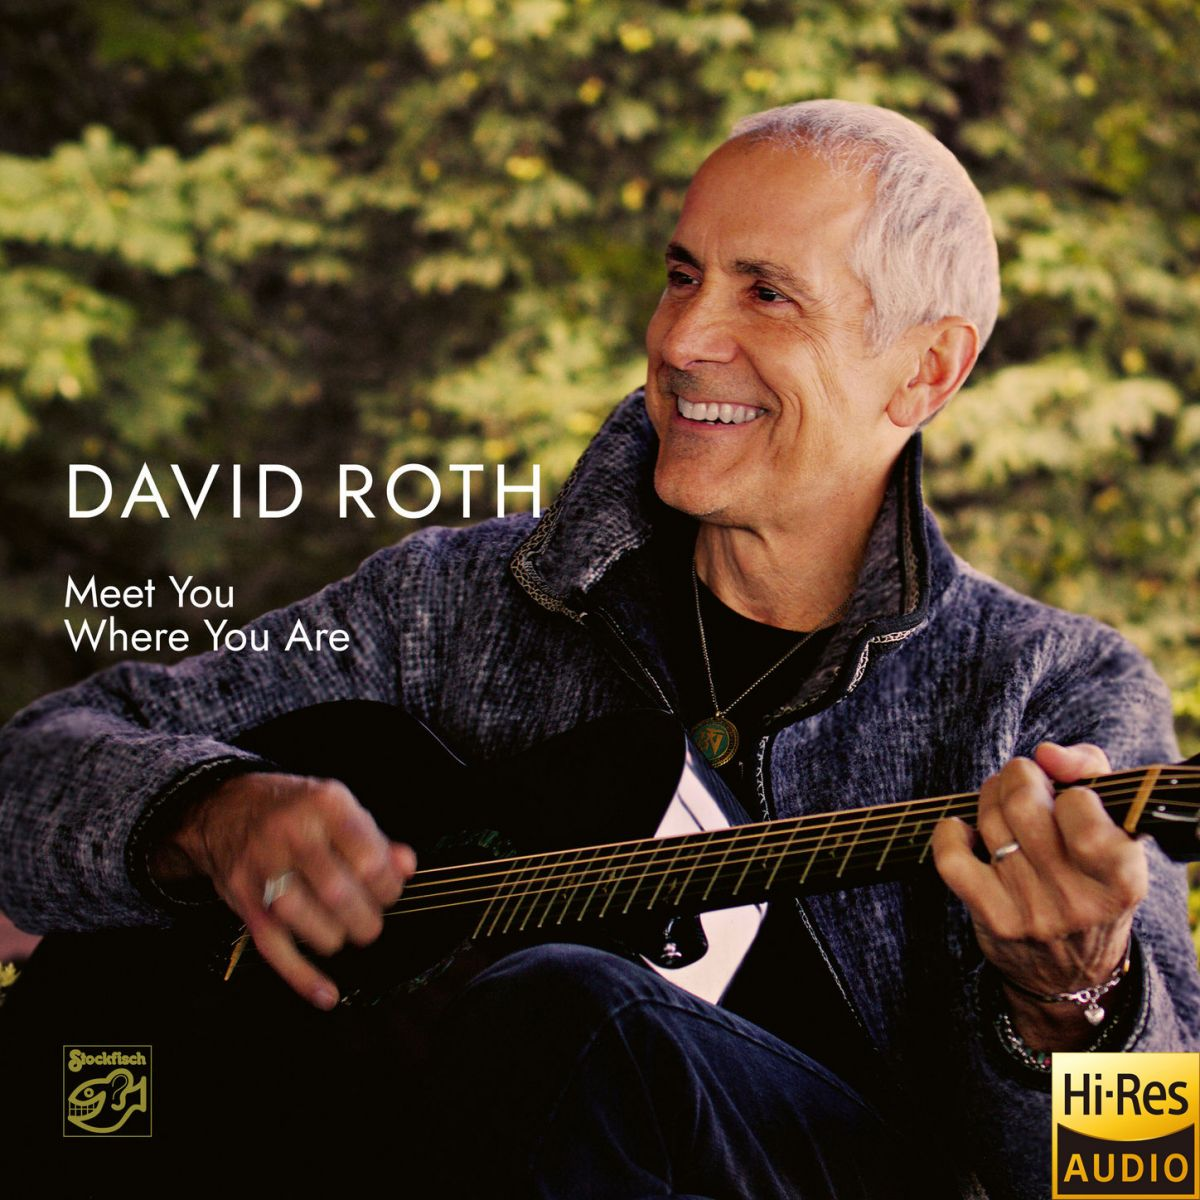 David Roth - Meet You Where You Are (24bit-88.2kHz)